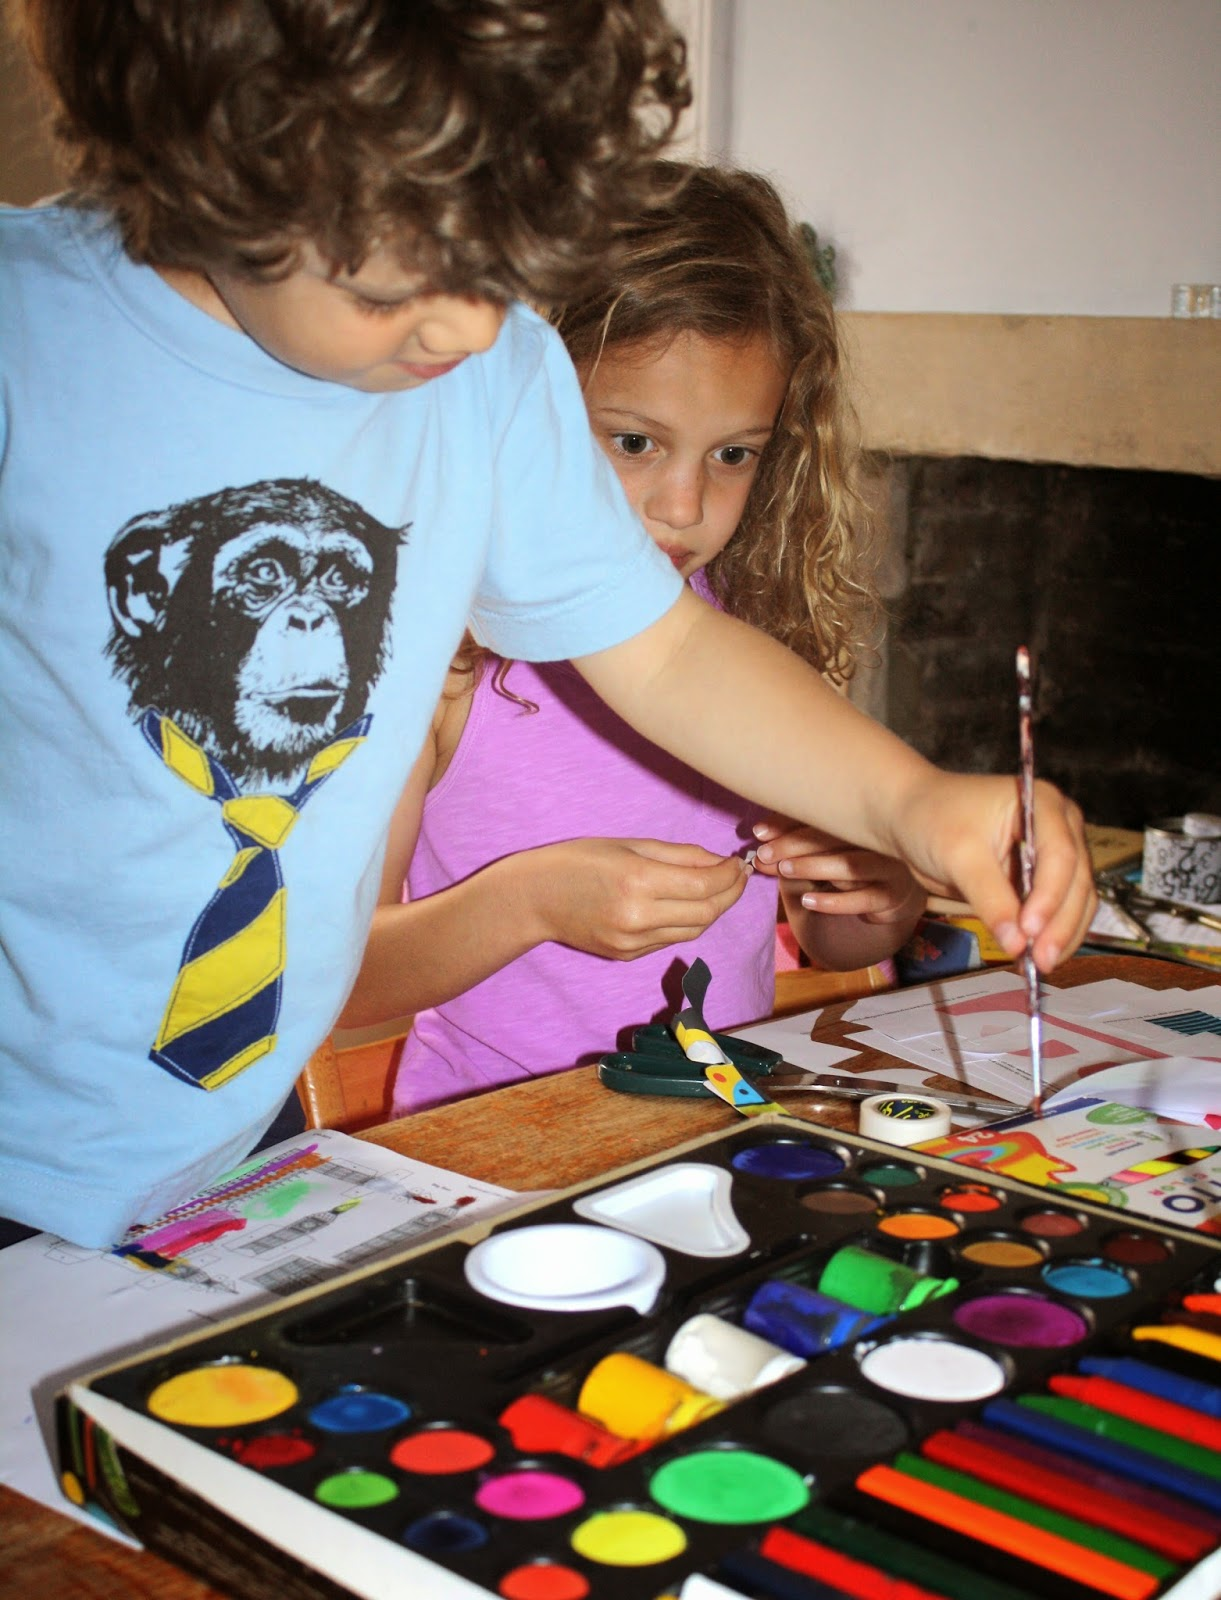 kids crafting